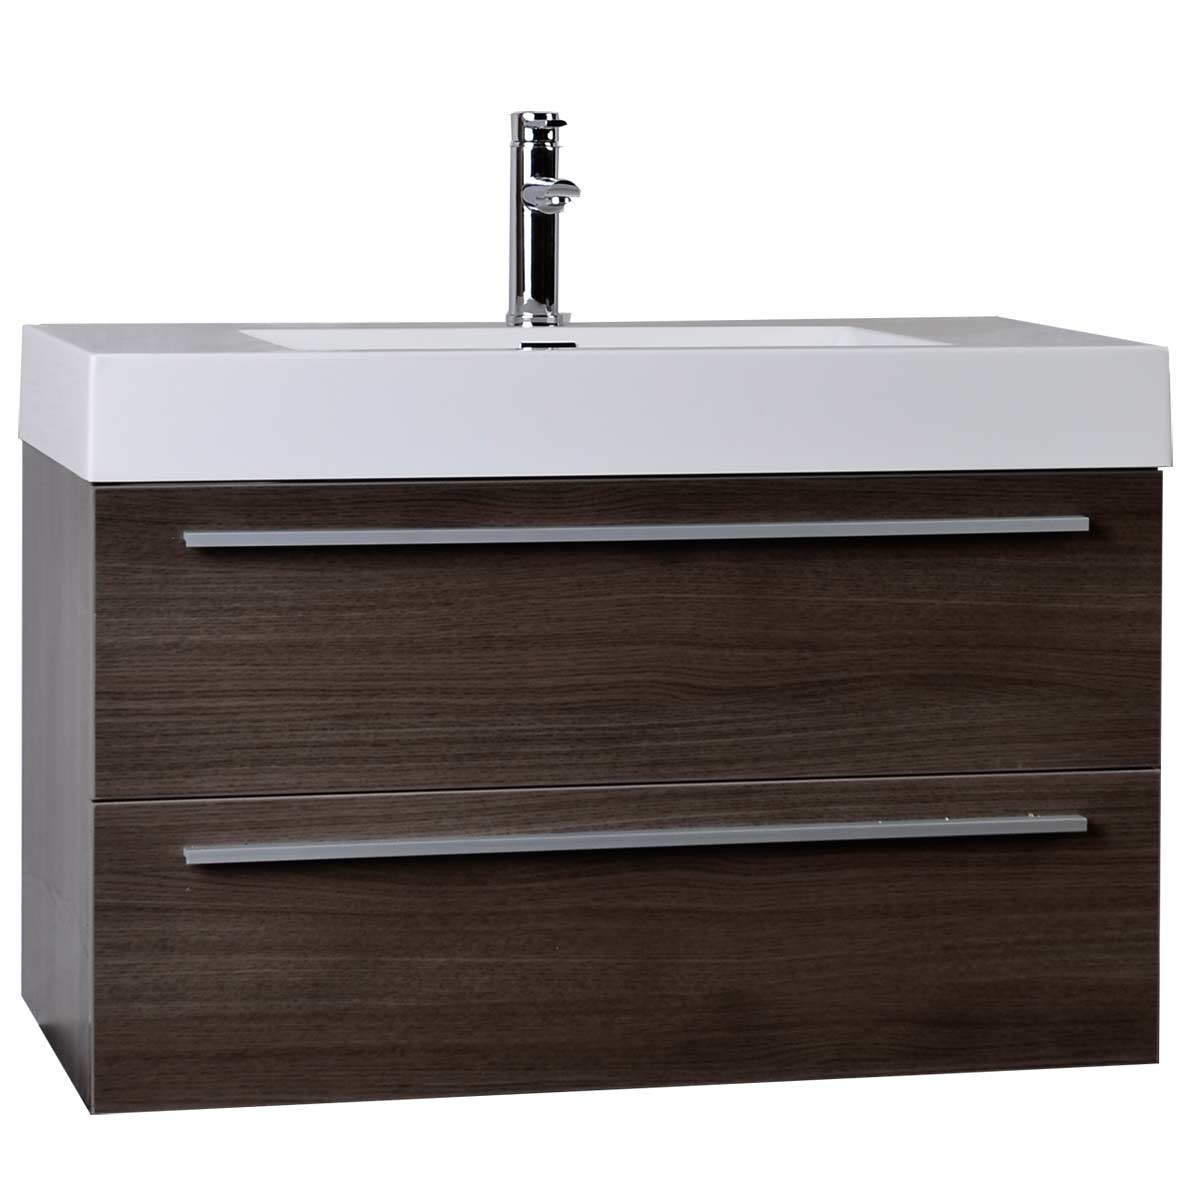 35 5 modern bathroom vanity grey oak wall mount free for Modern bathroom